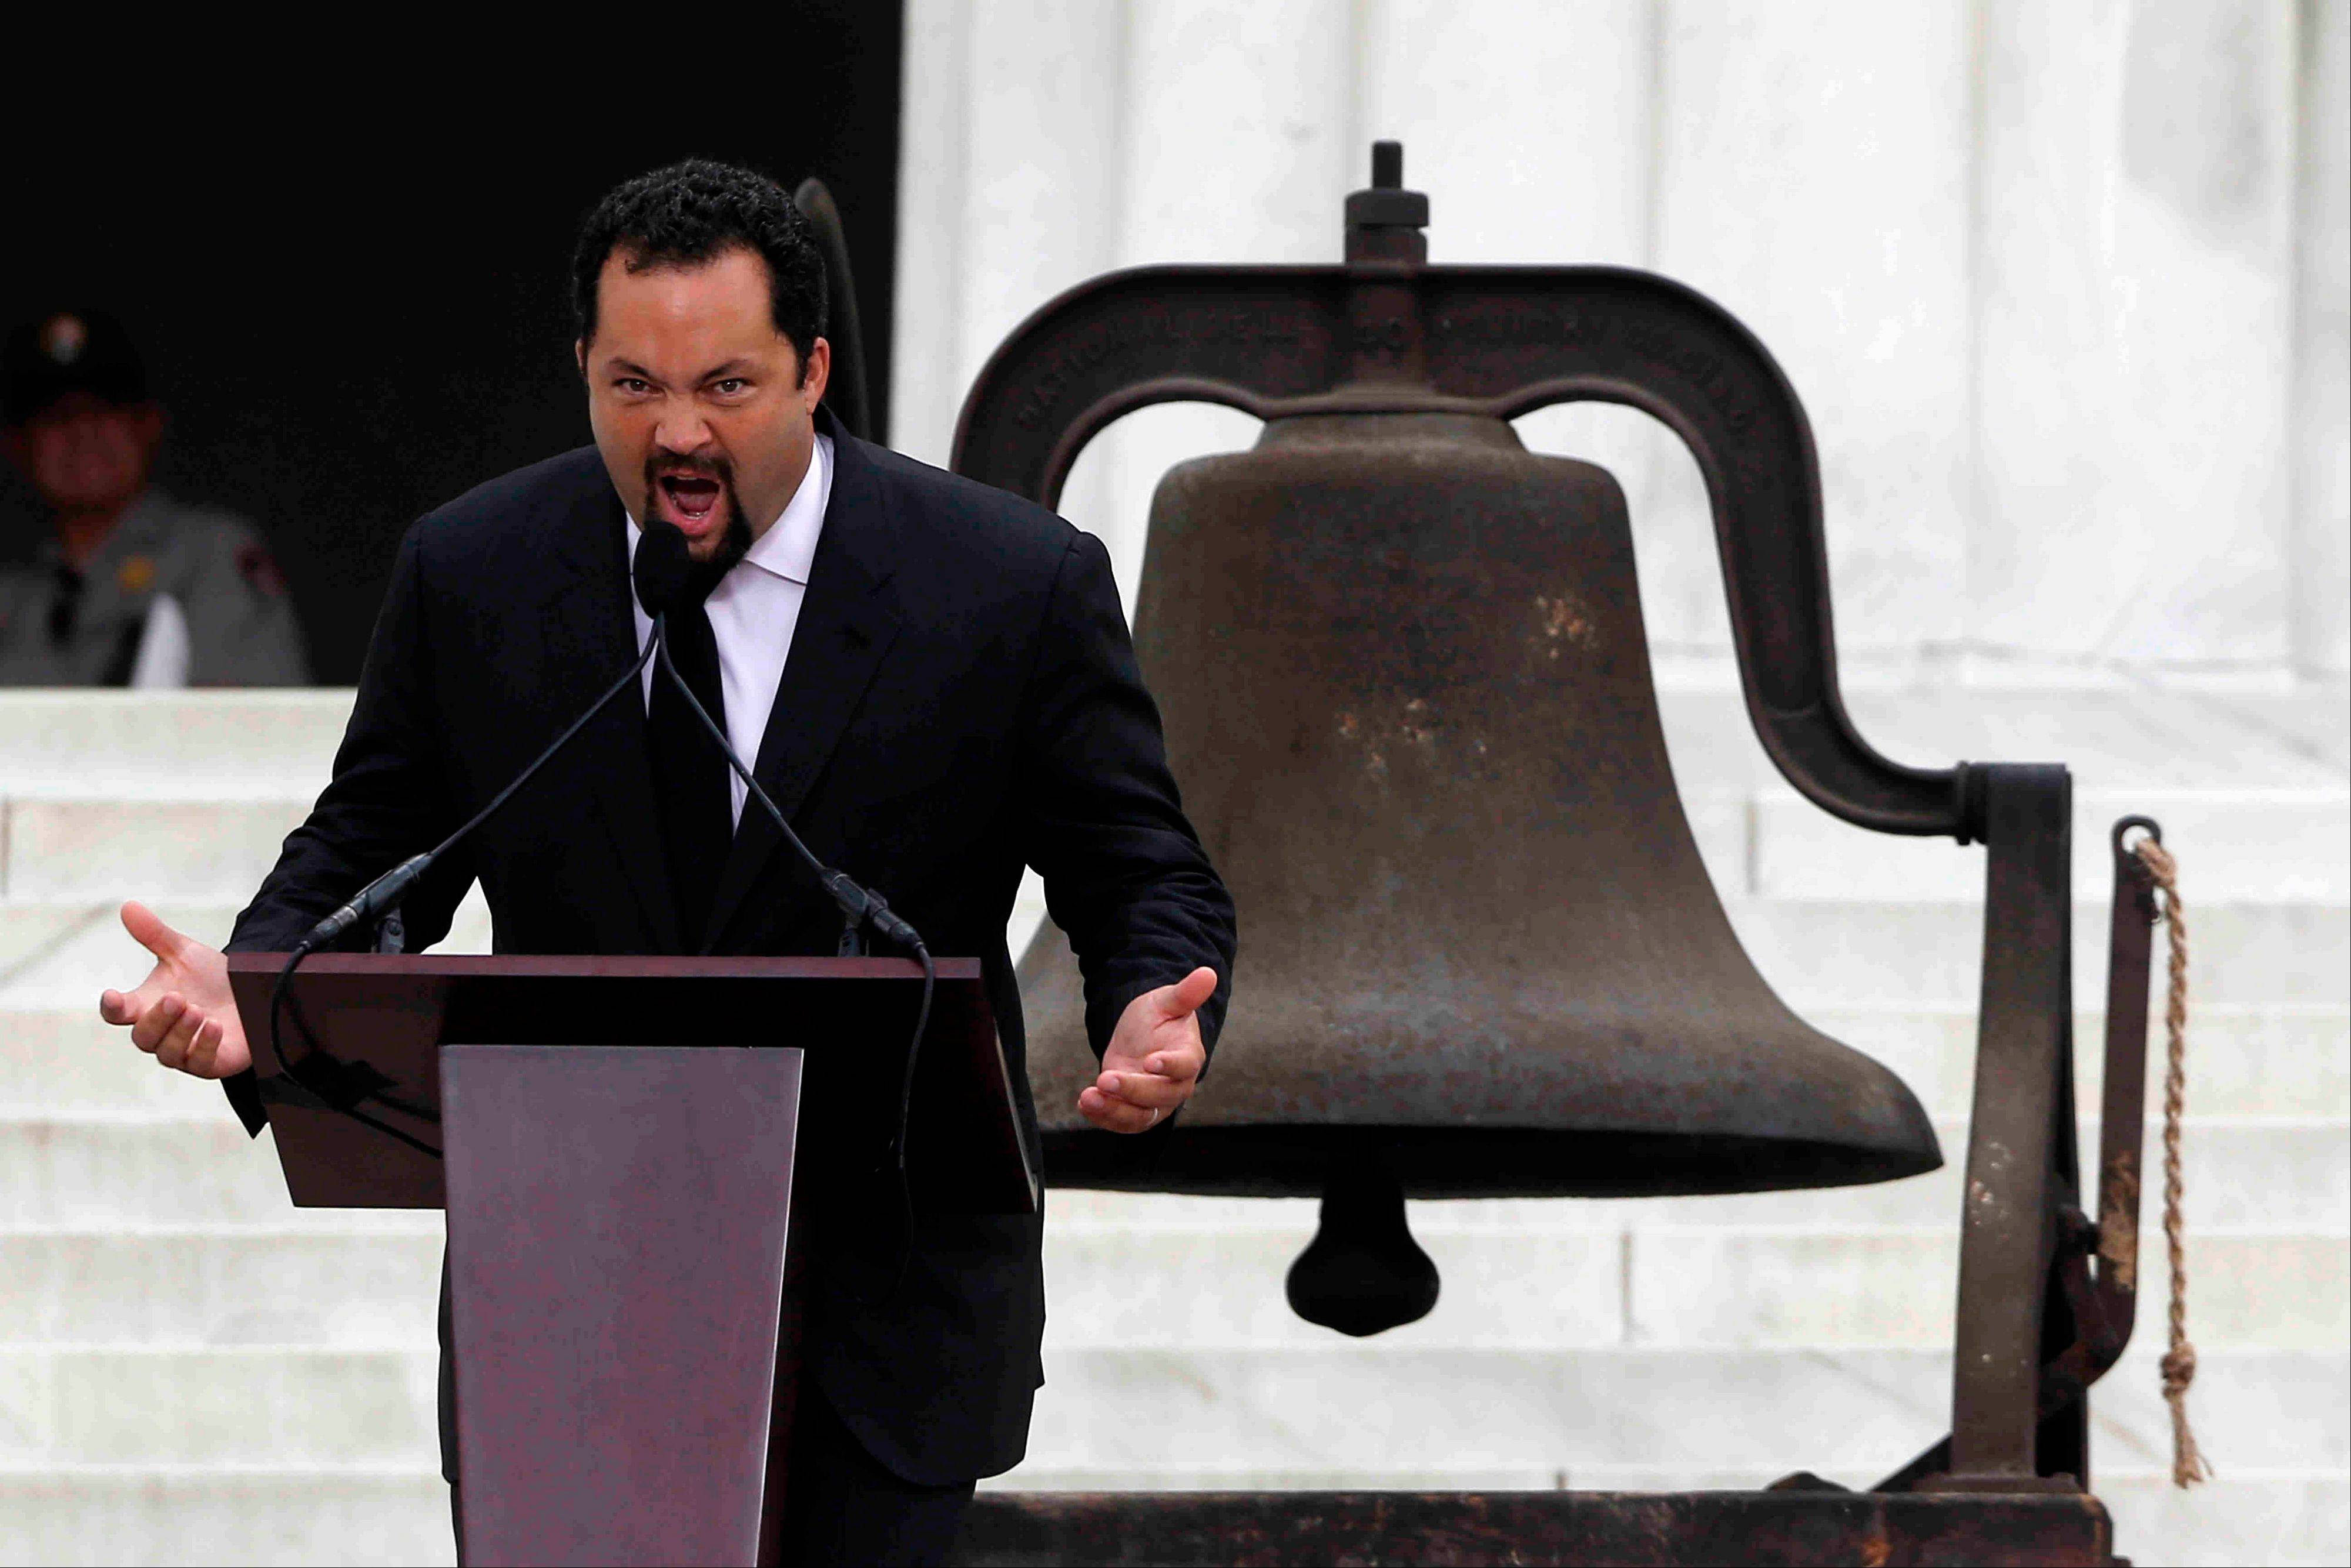 NAACP President and CEO Benjamin Jealous speaks at the 50th Anniversary of the March on Washington where Martin Luther King, Jr., spoke, Wednesday, Aug. 28, 2013, at the Lincoln Memorial in Washington.